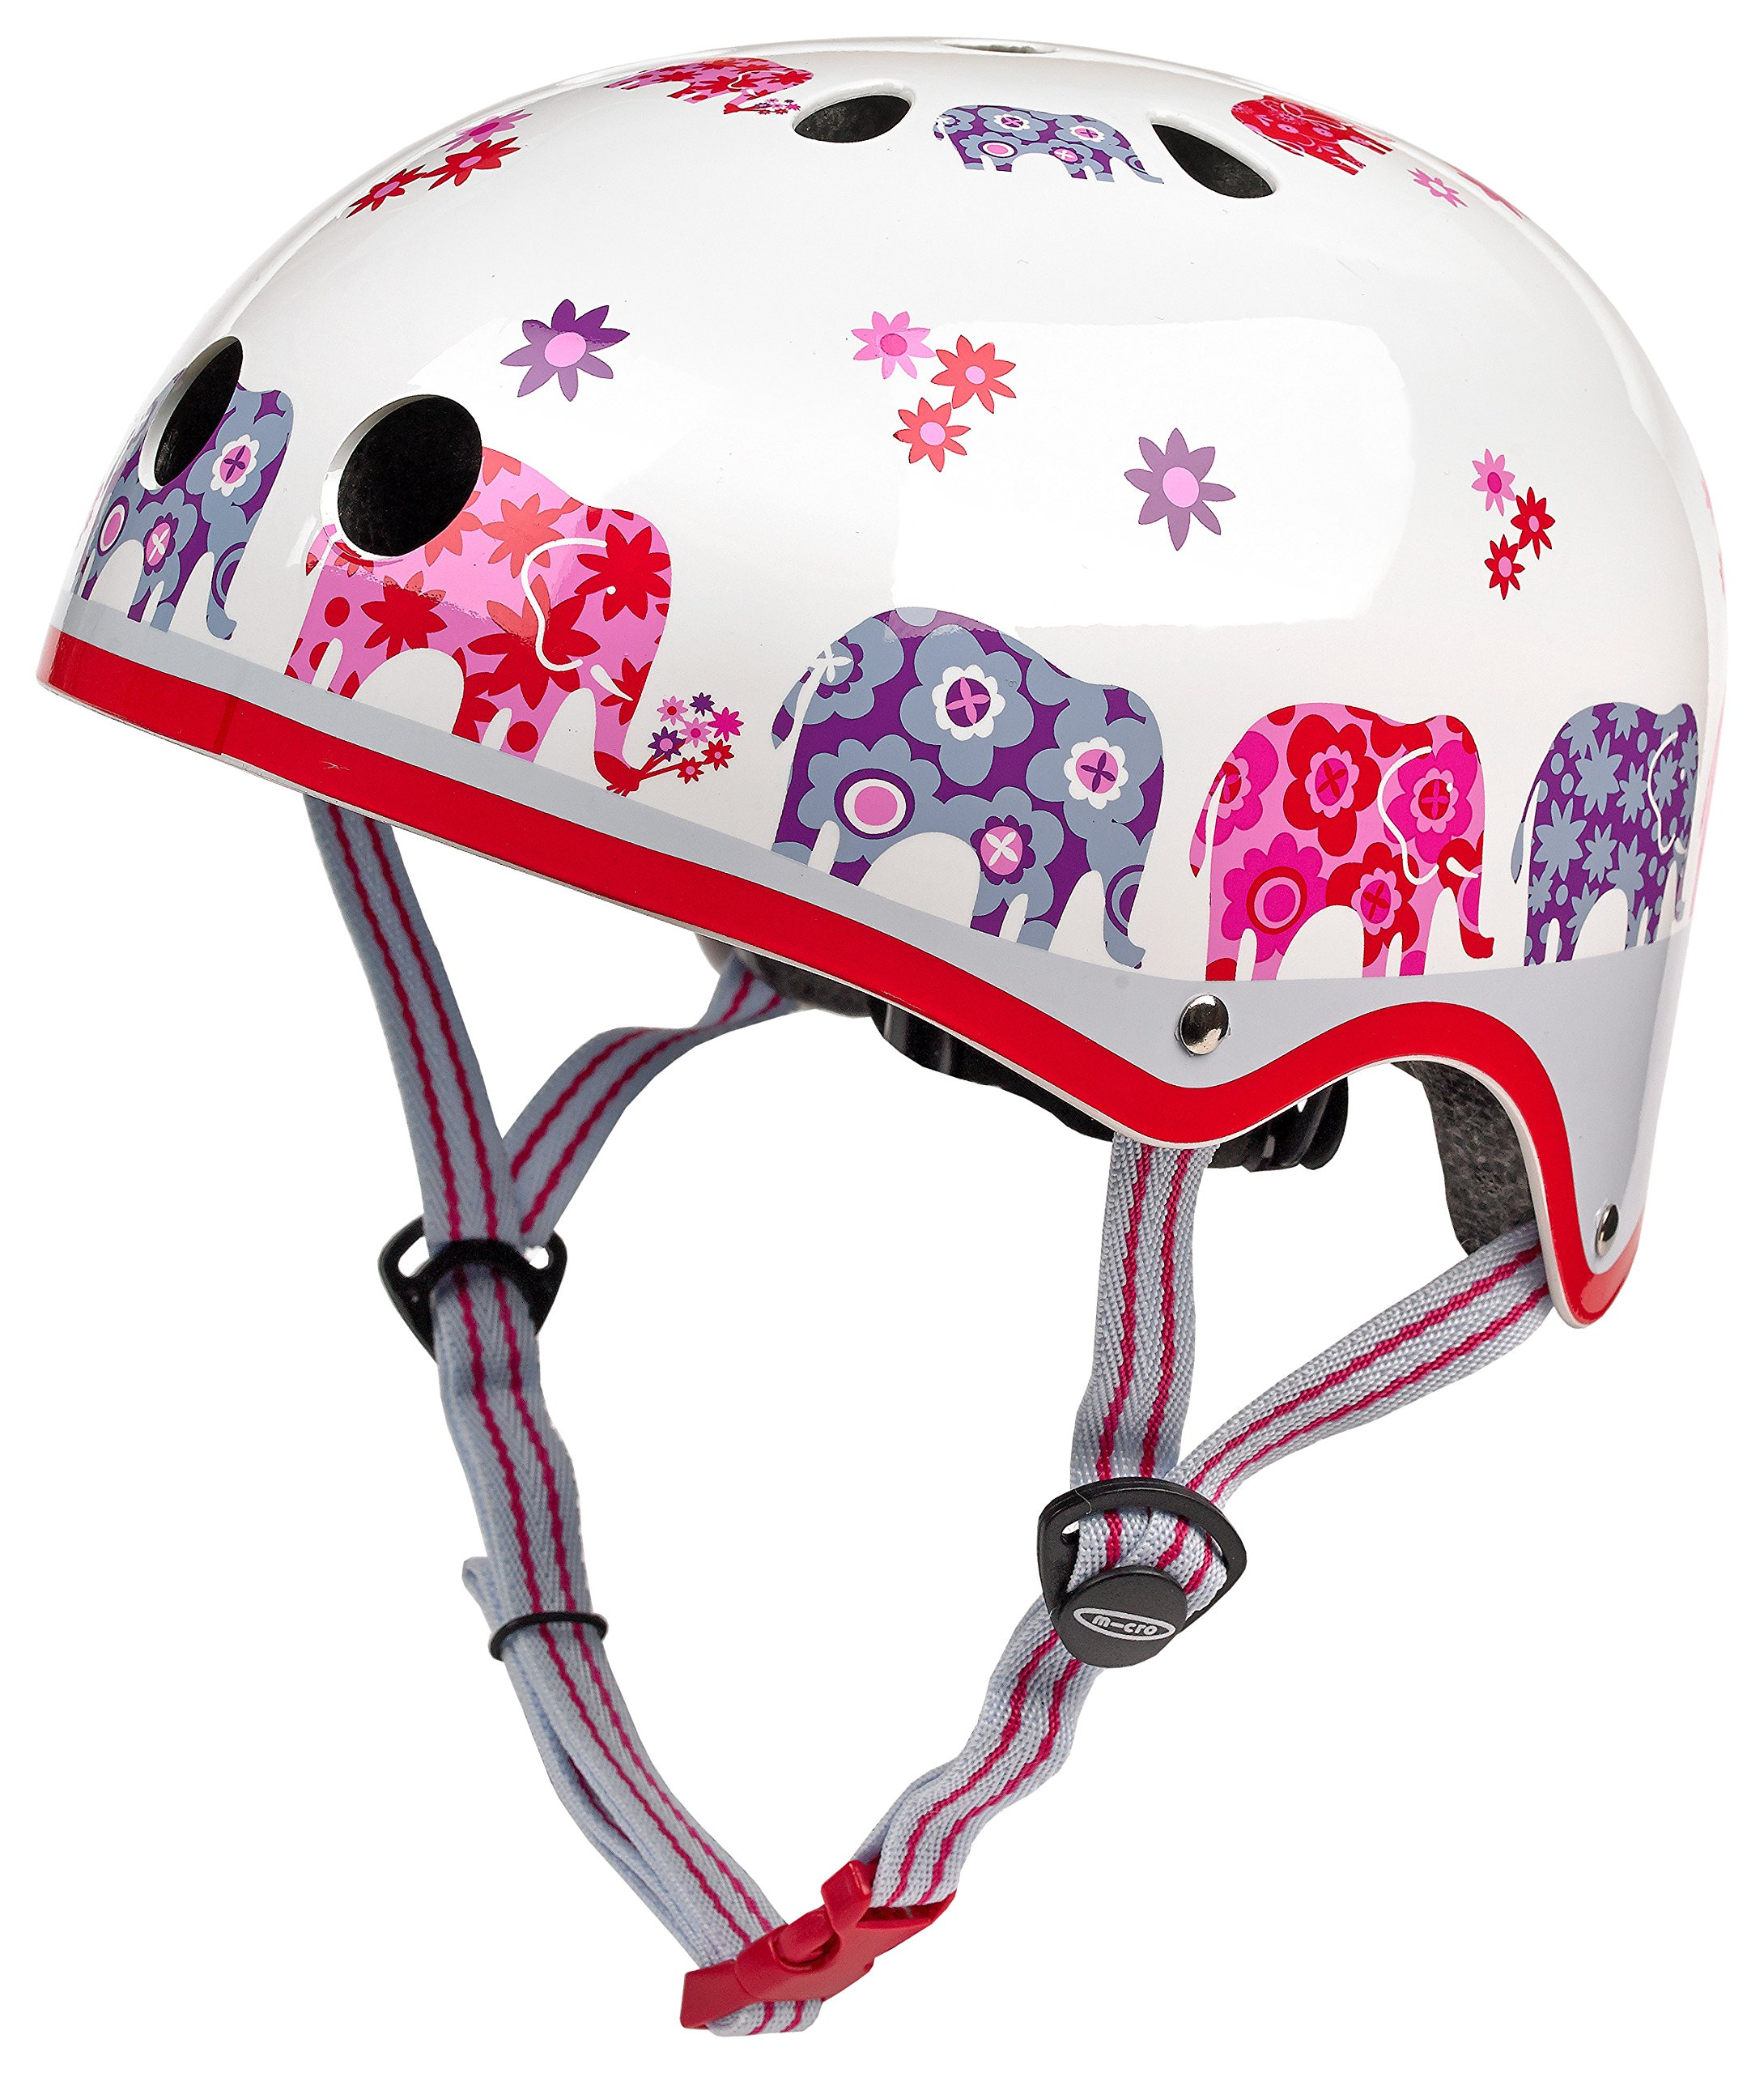 Micro Helmet Elephant Small (18-20.5 inches) by Micro Kickboard (Image #1)